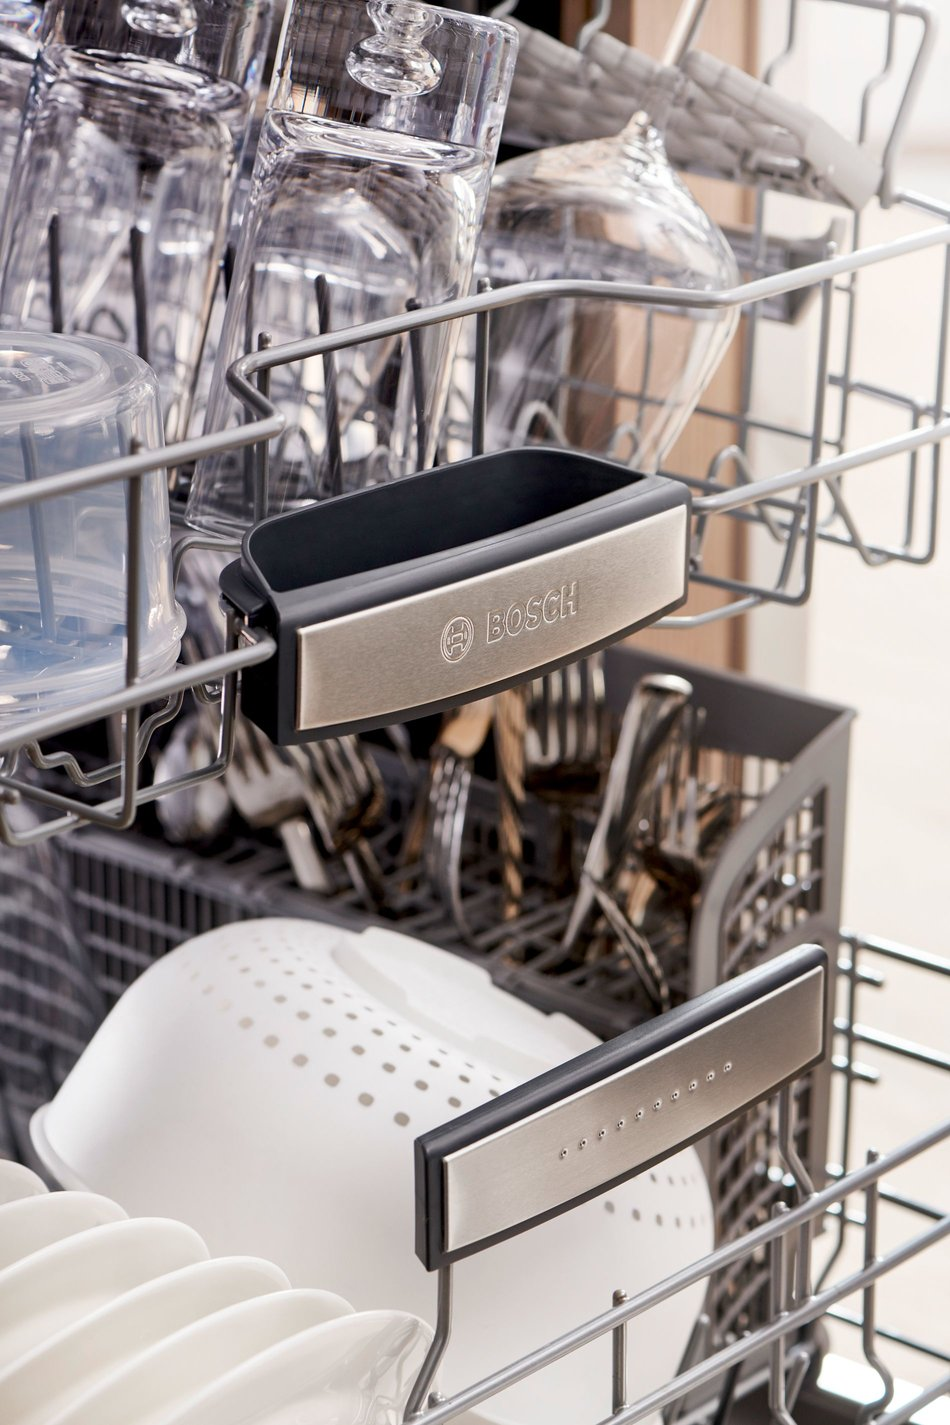 High end dishwasher